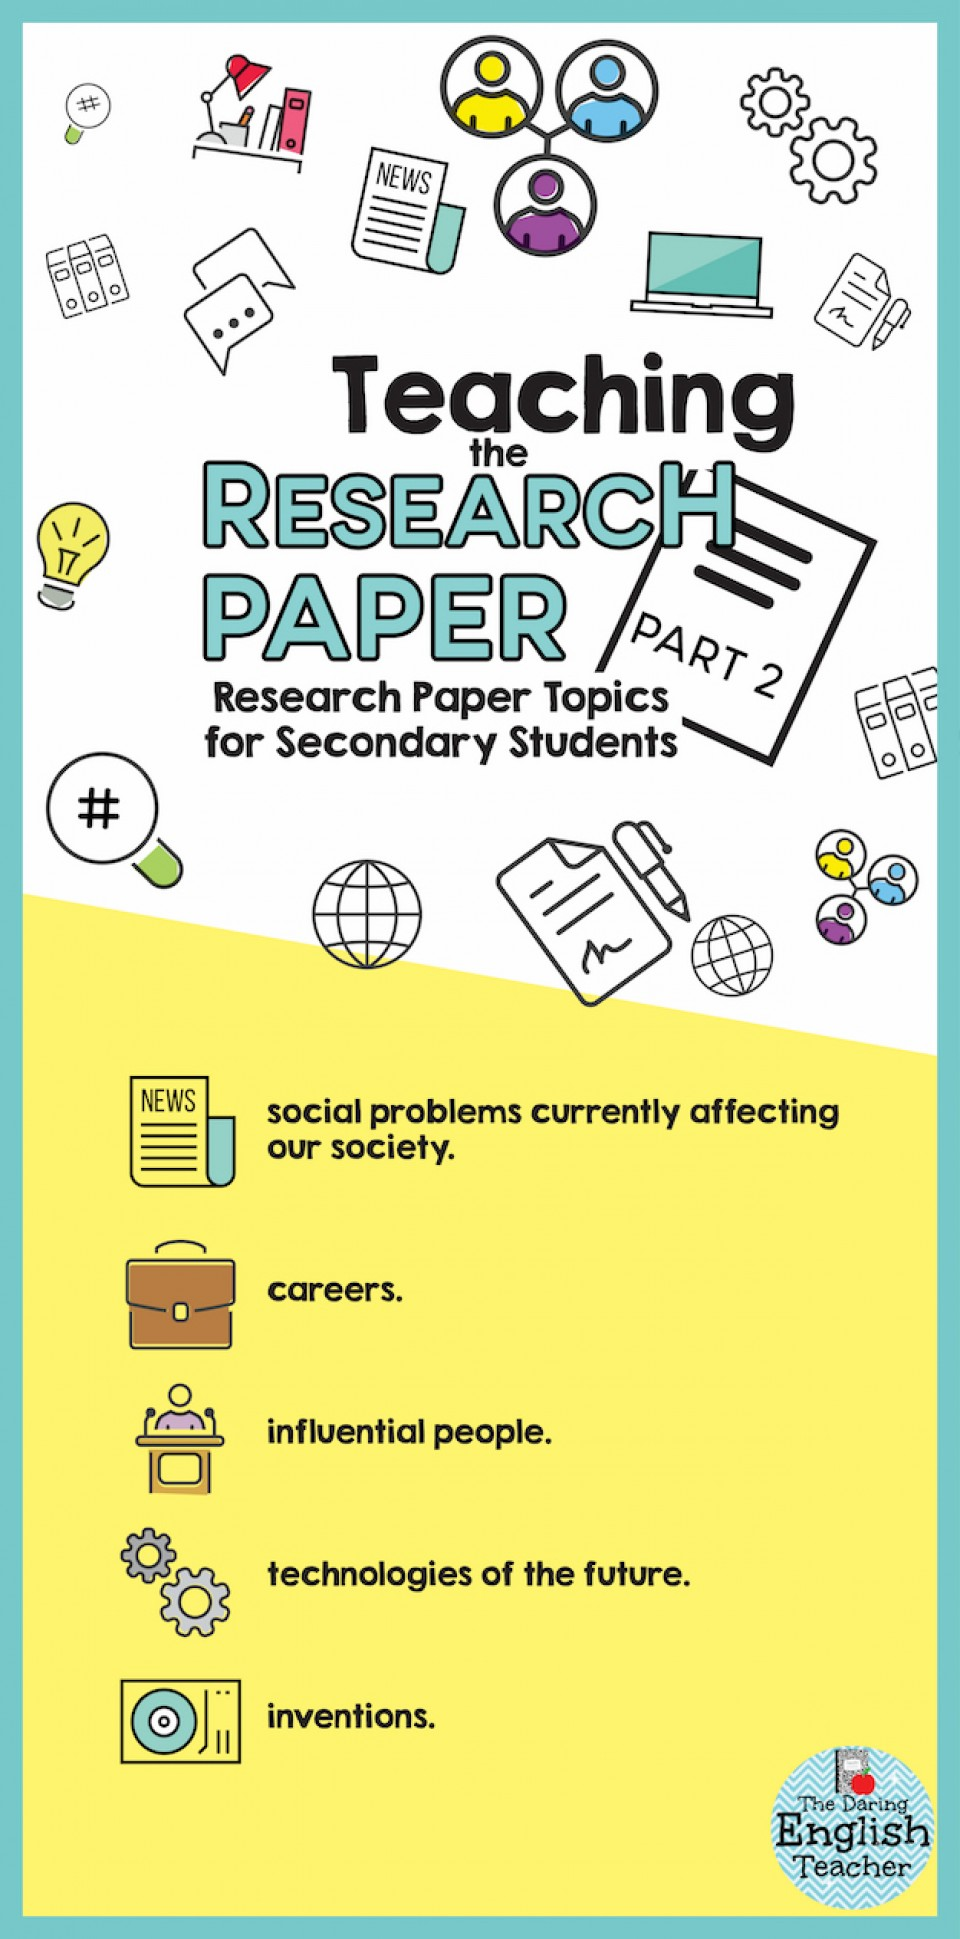 012 Research Paper Infographic2bp22b2 Topics High Incredible School Argumentative Biology Physics 960